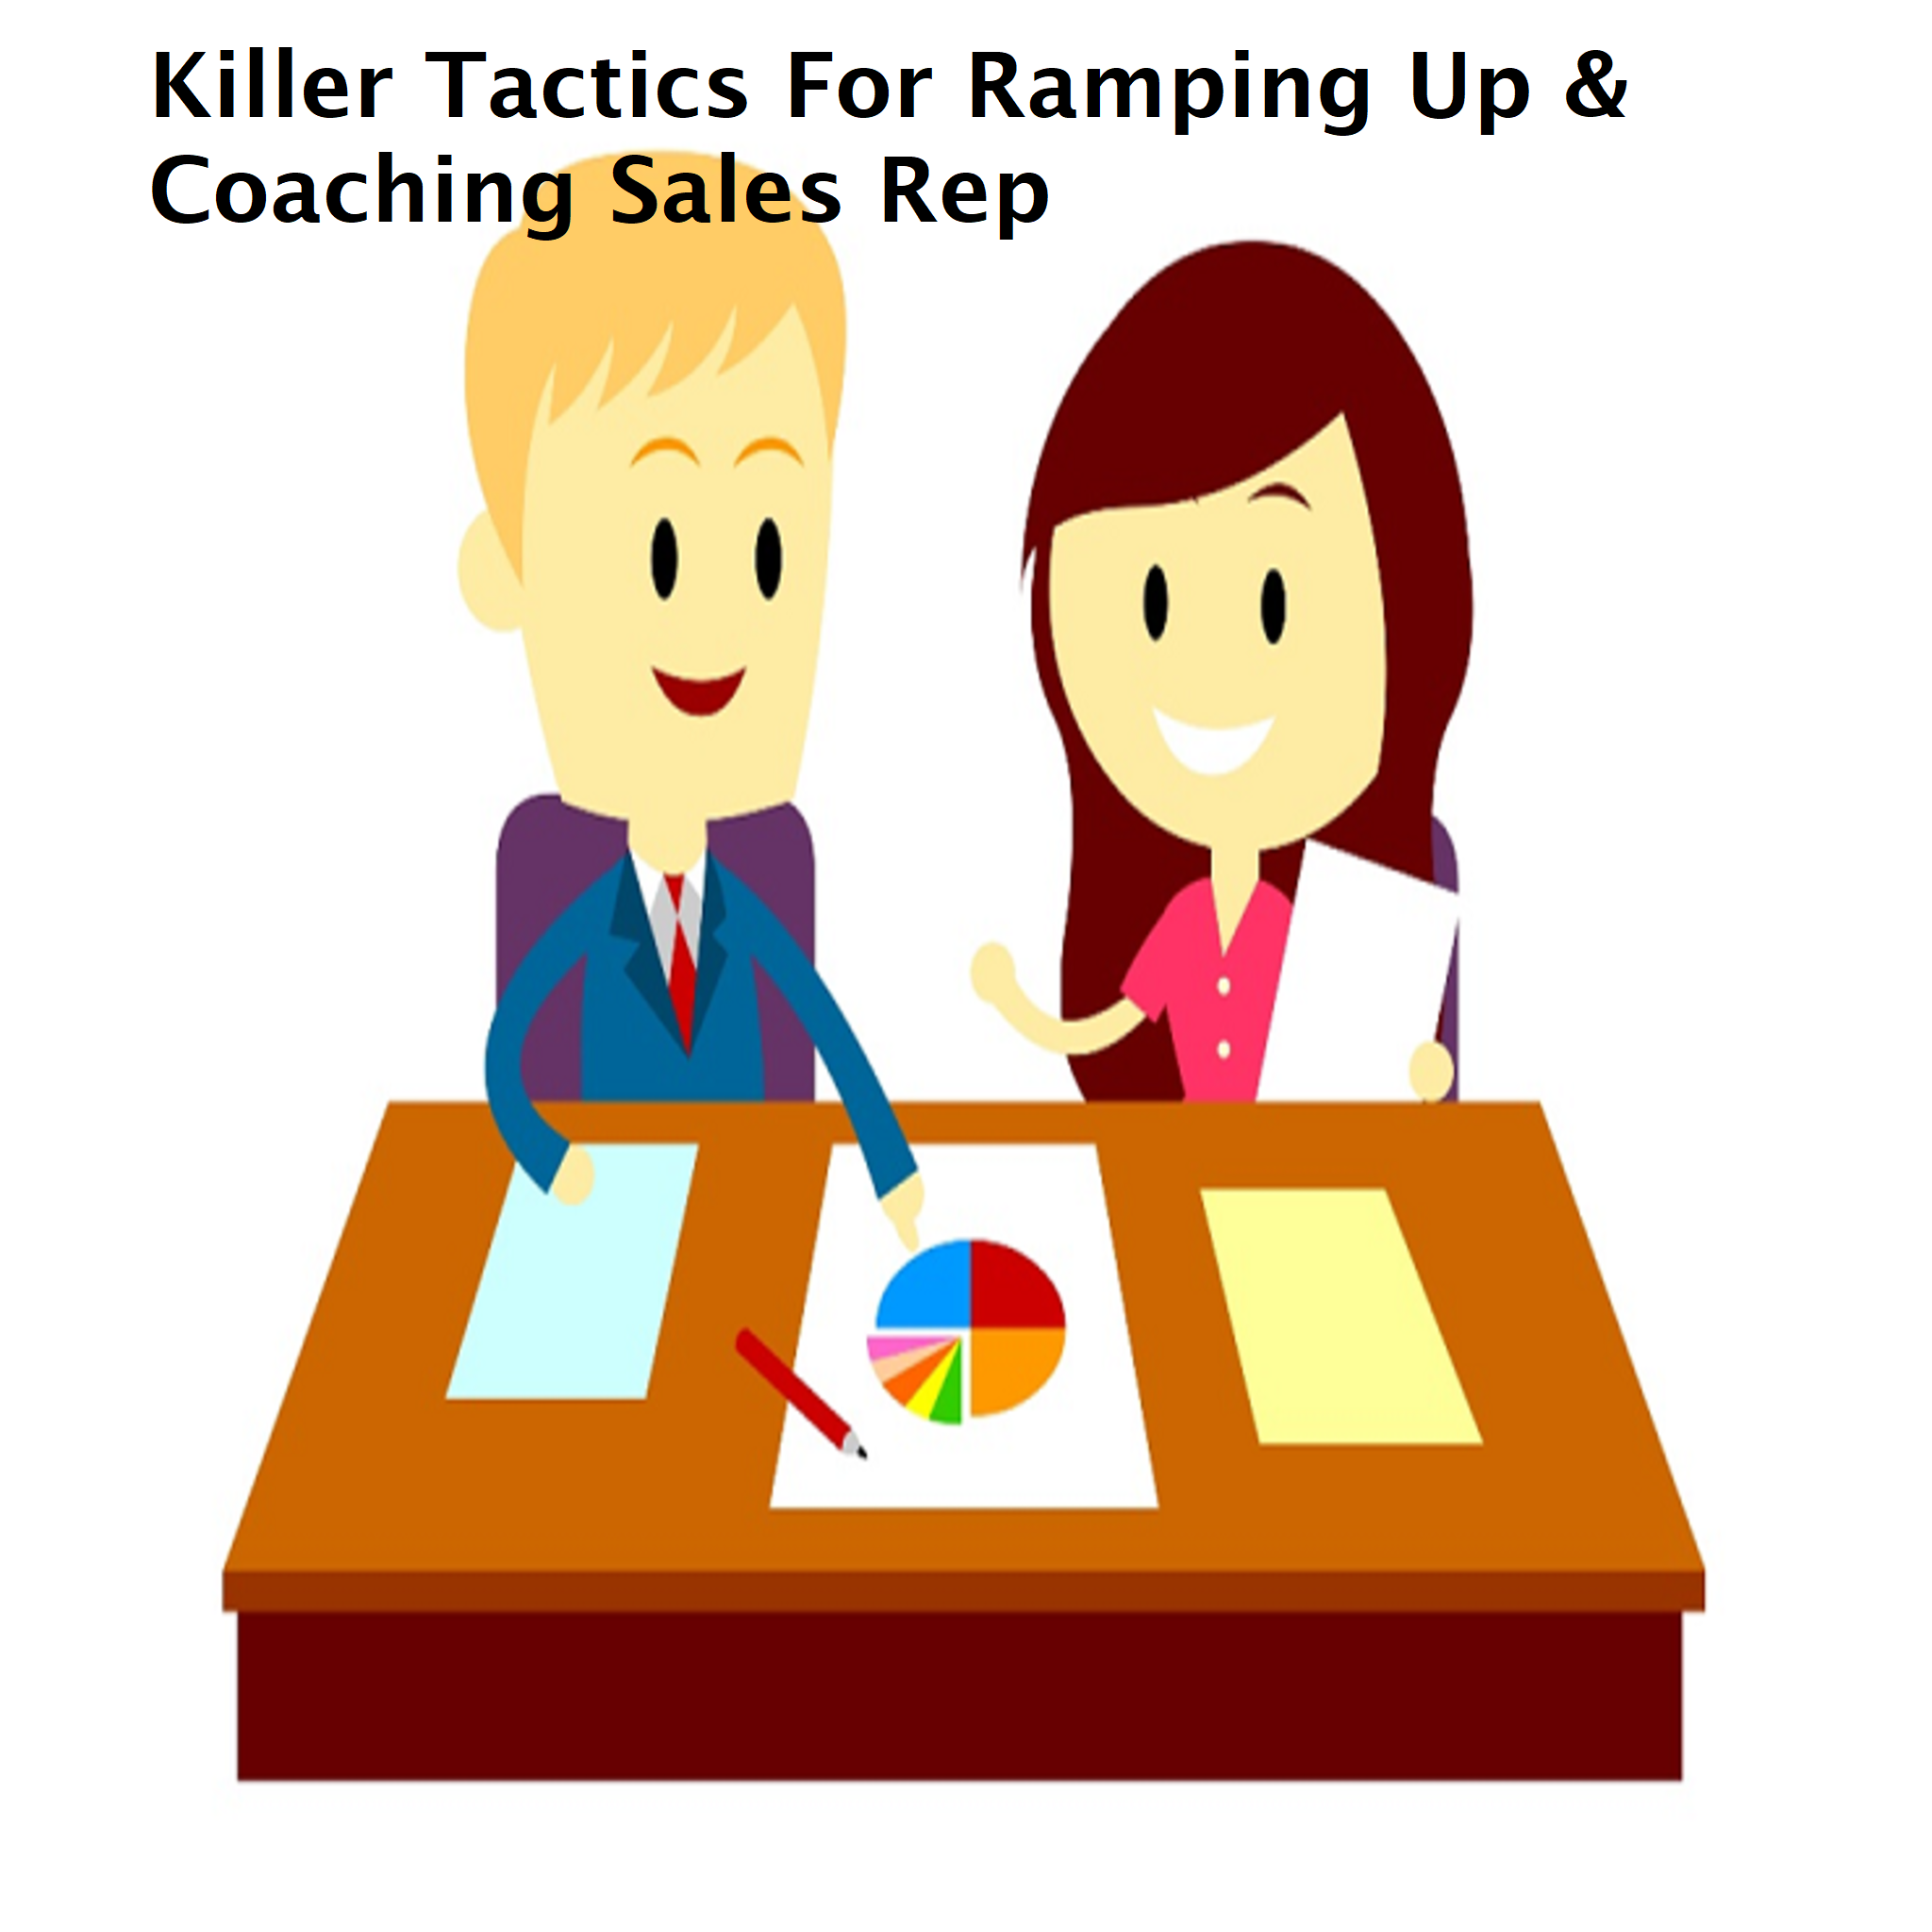 Killer Tactics For Ramping Up & Coaching Sales Rep